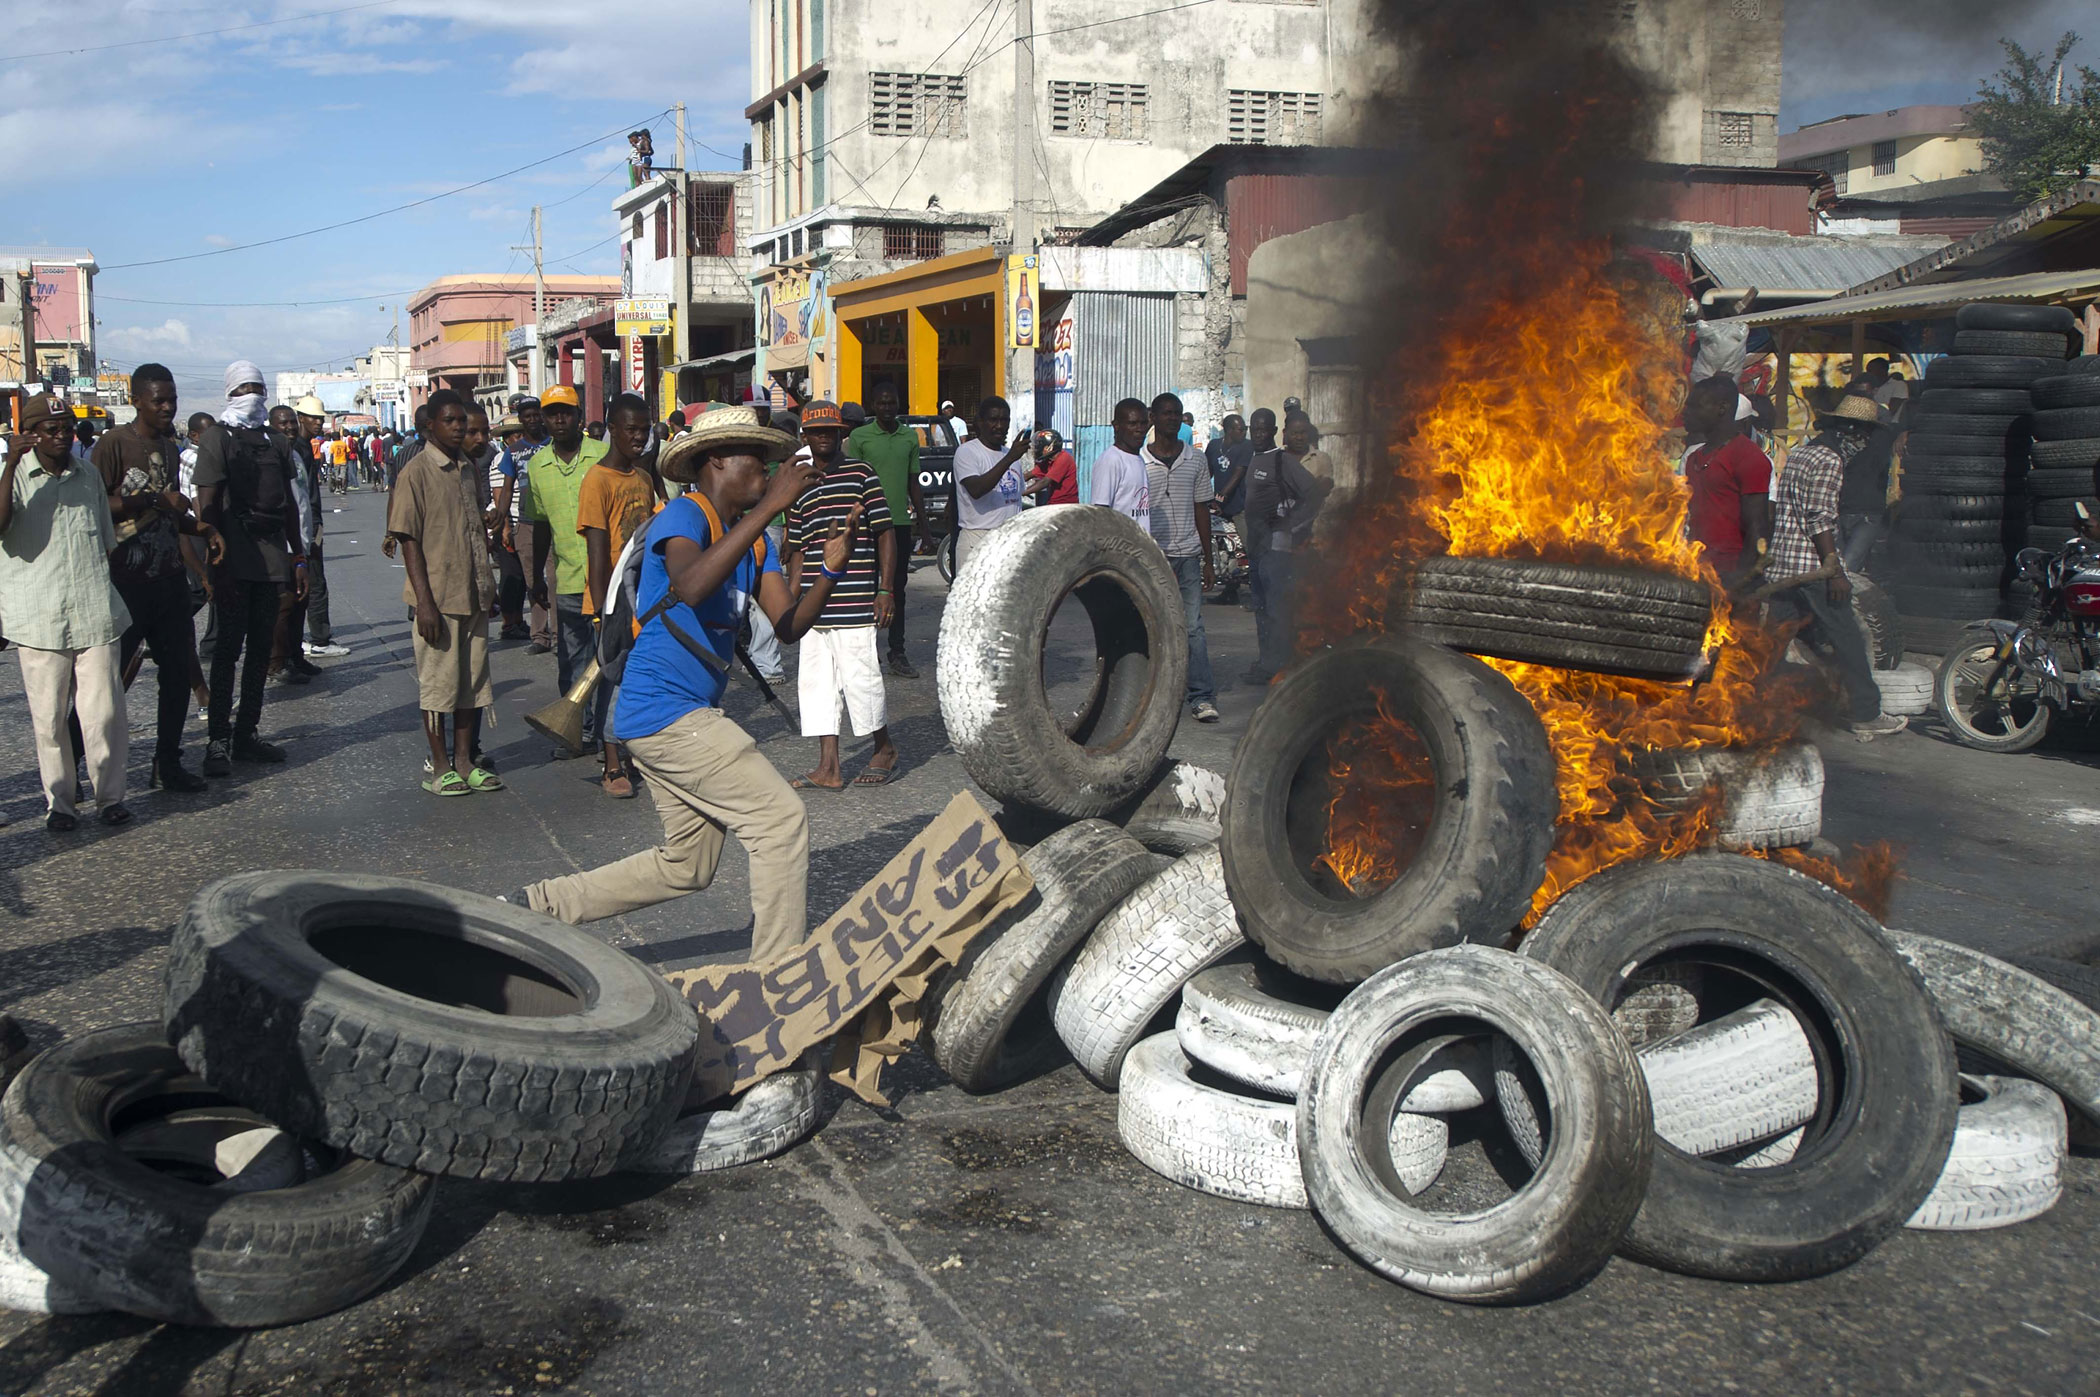 Protesters burn tires during a march against the government of Haitian President Michel Martelly in Port-au-Prince, Haiti on Jan. 11, 2015.